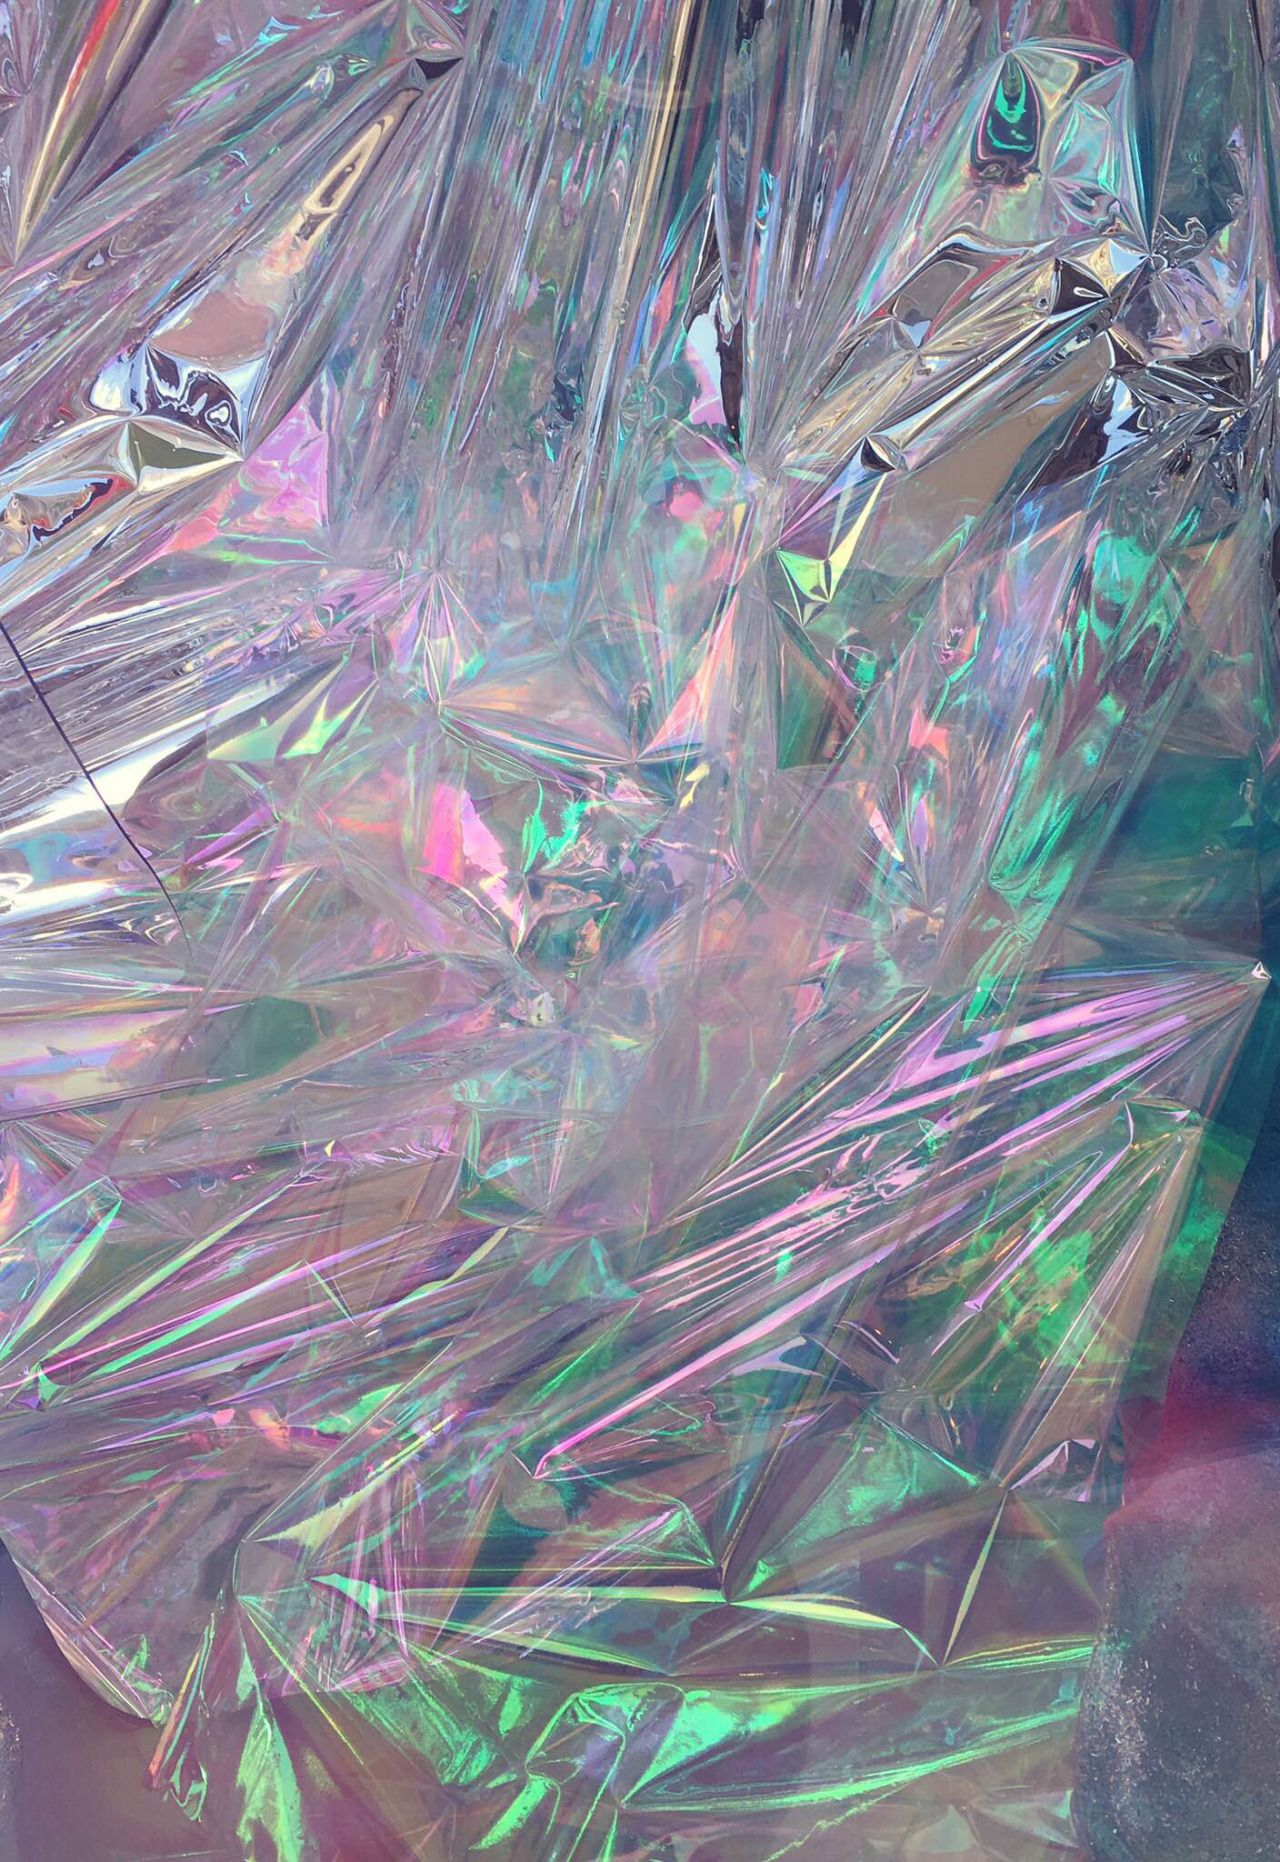 ✦ Holographic, Iridescent, Metallic, & Chrome Blog ✦: Photo